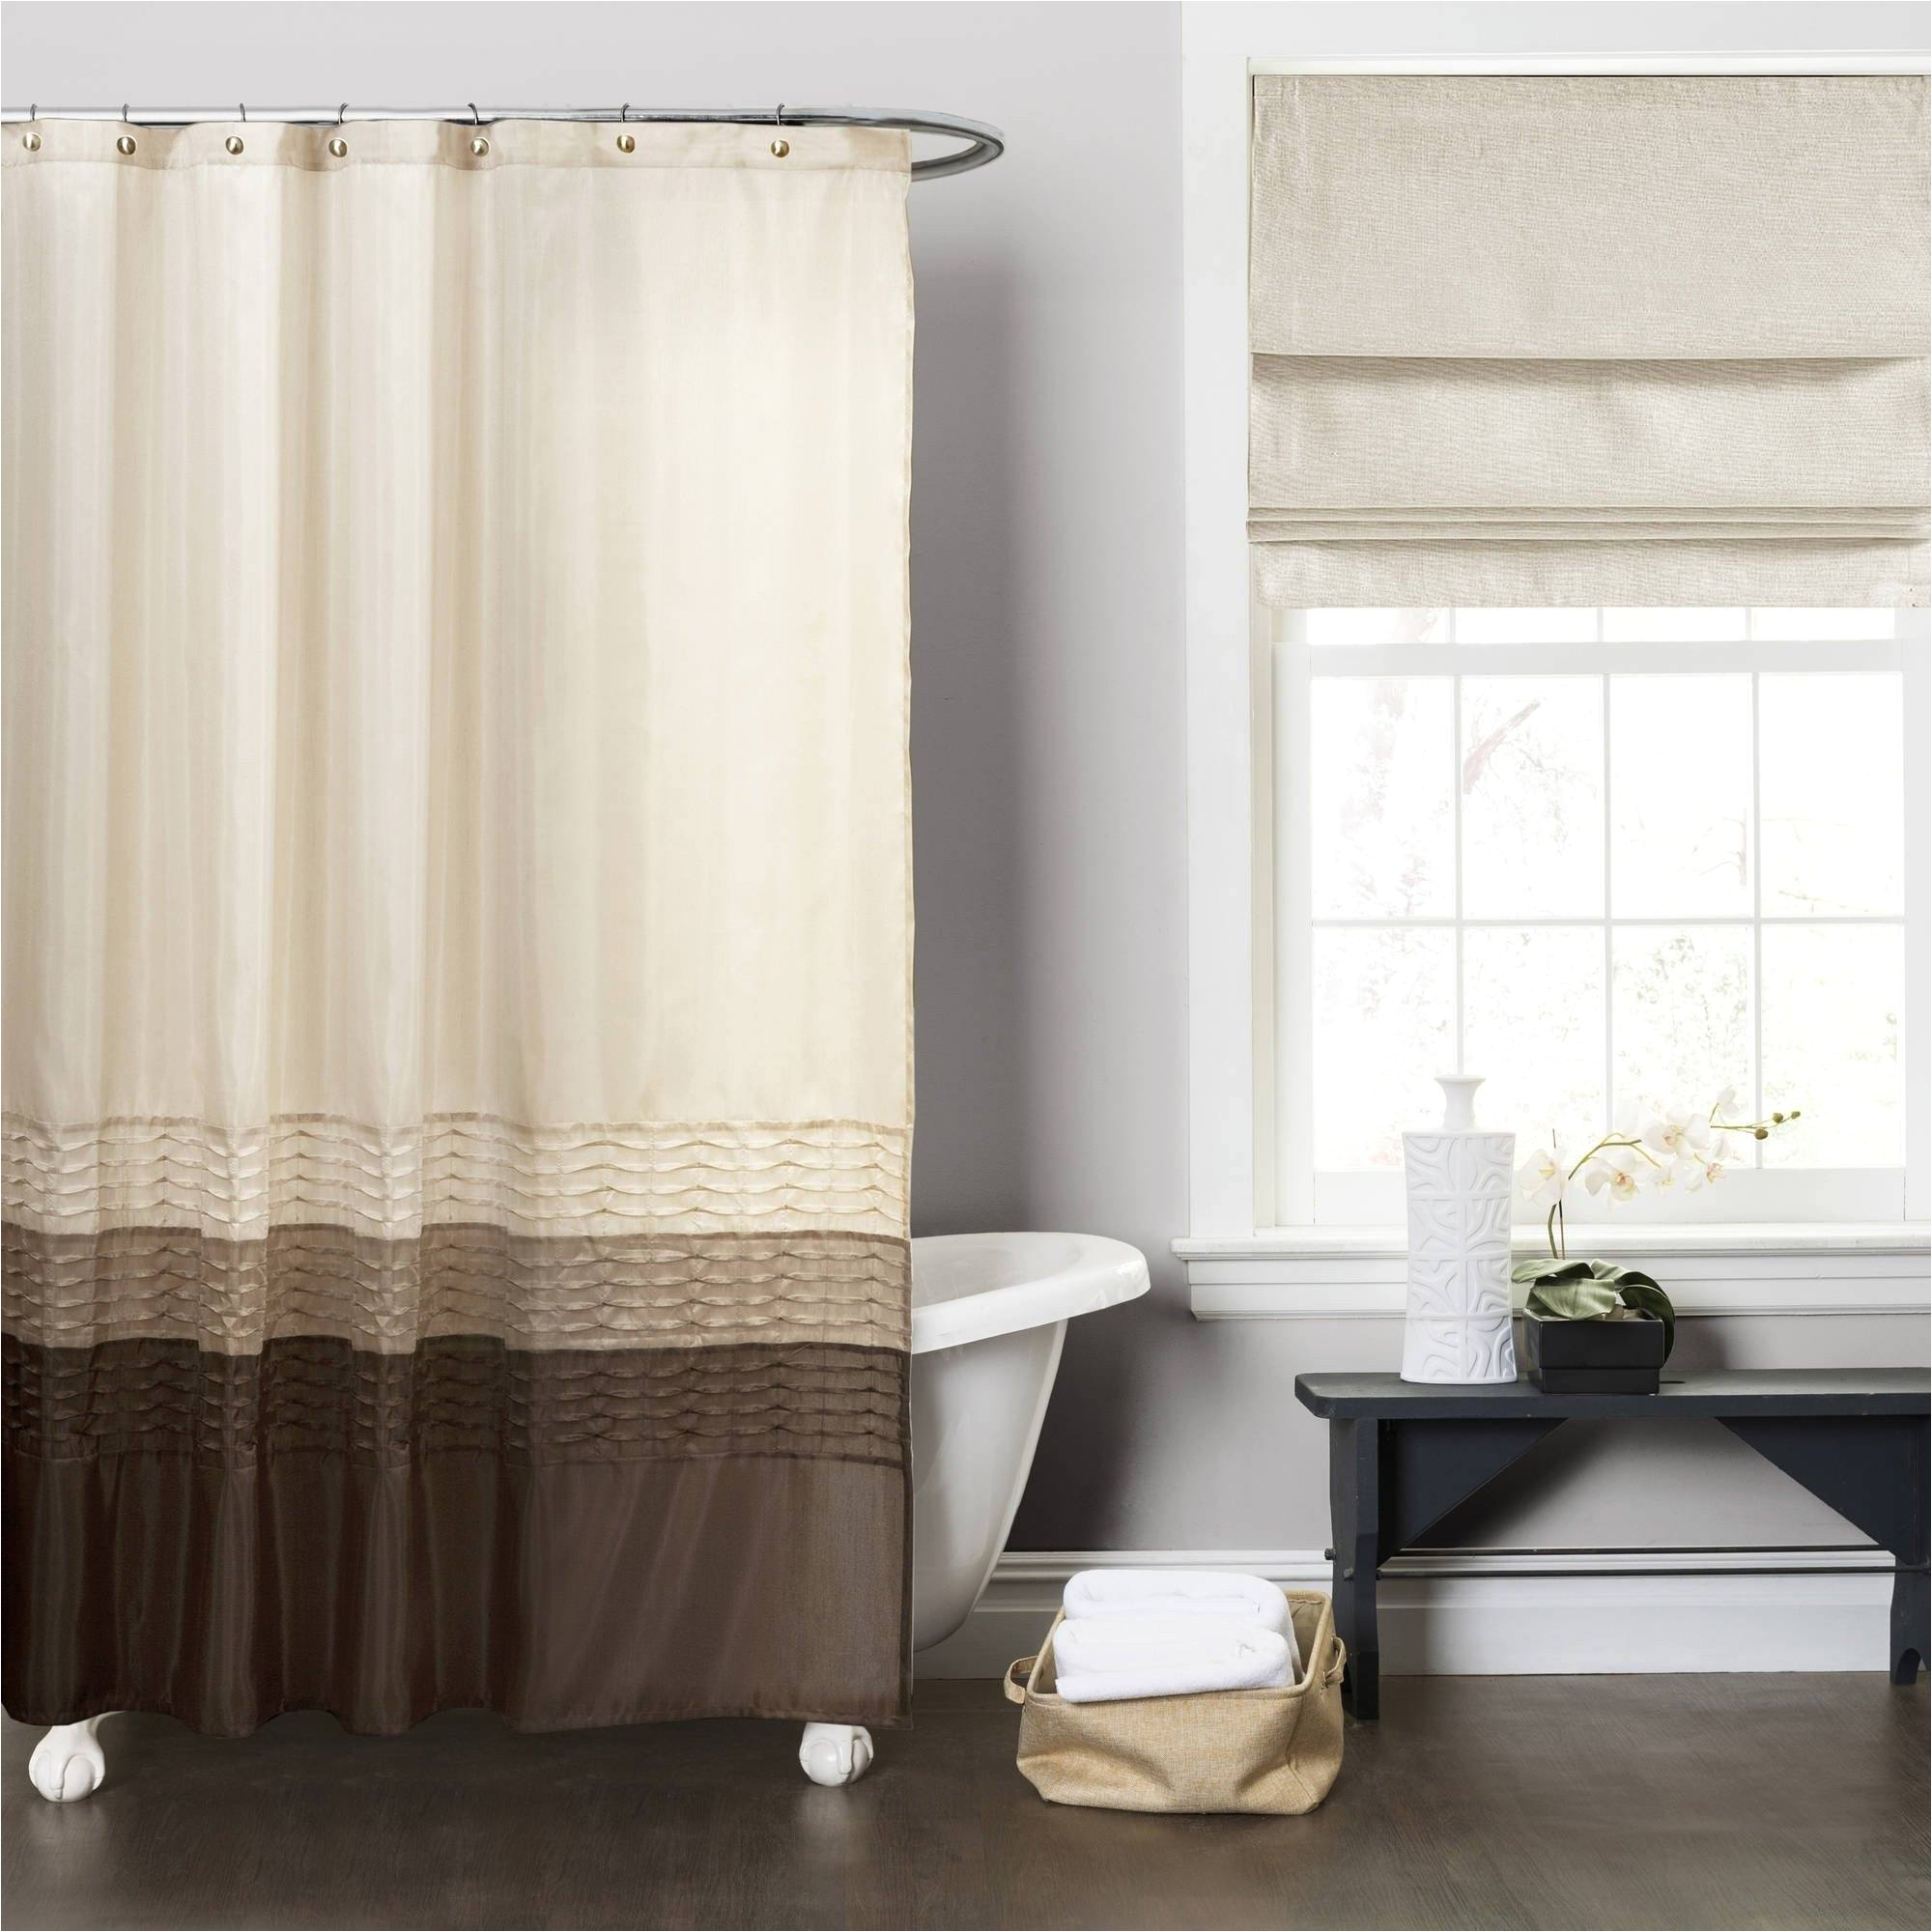 Kohls Com Shower Curtains Kohls Curtains For Bedroom 23 Unique Kohls Com Curtains Shower